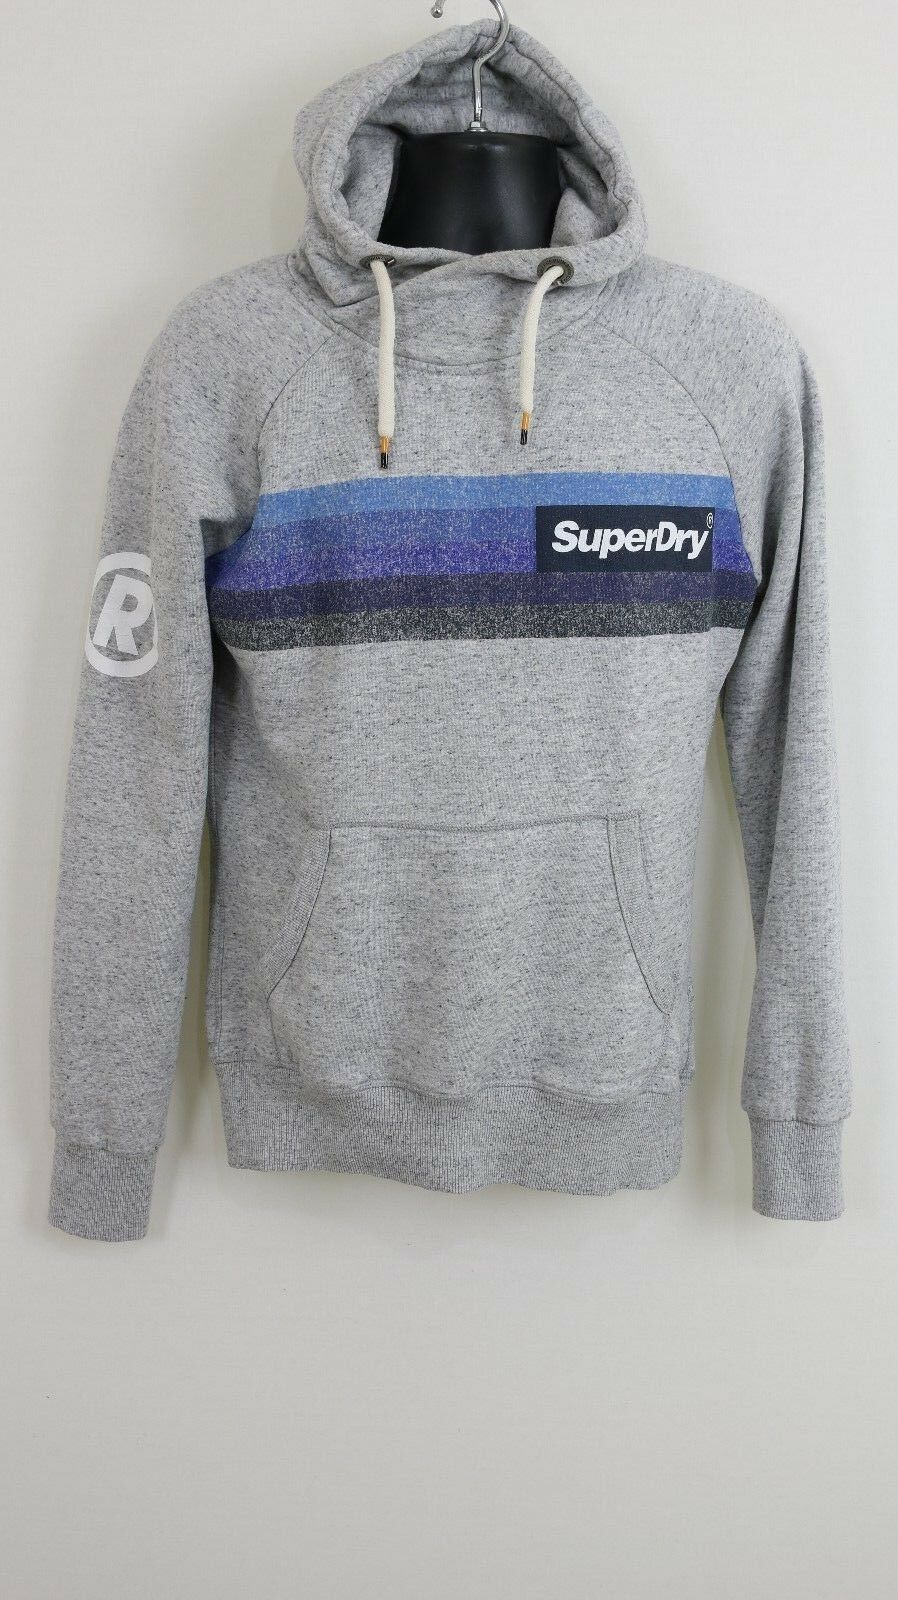 Superdry UNISEX grau Hoodie With Chest Stripe Logo Print UK Größe SMALL